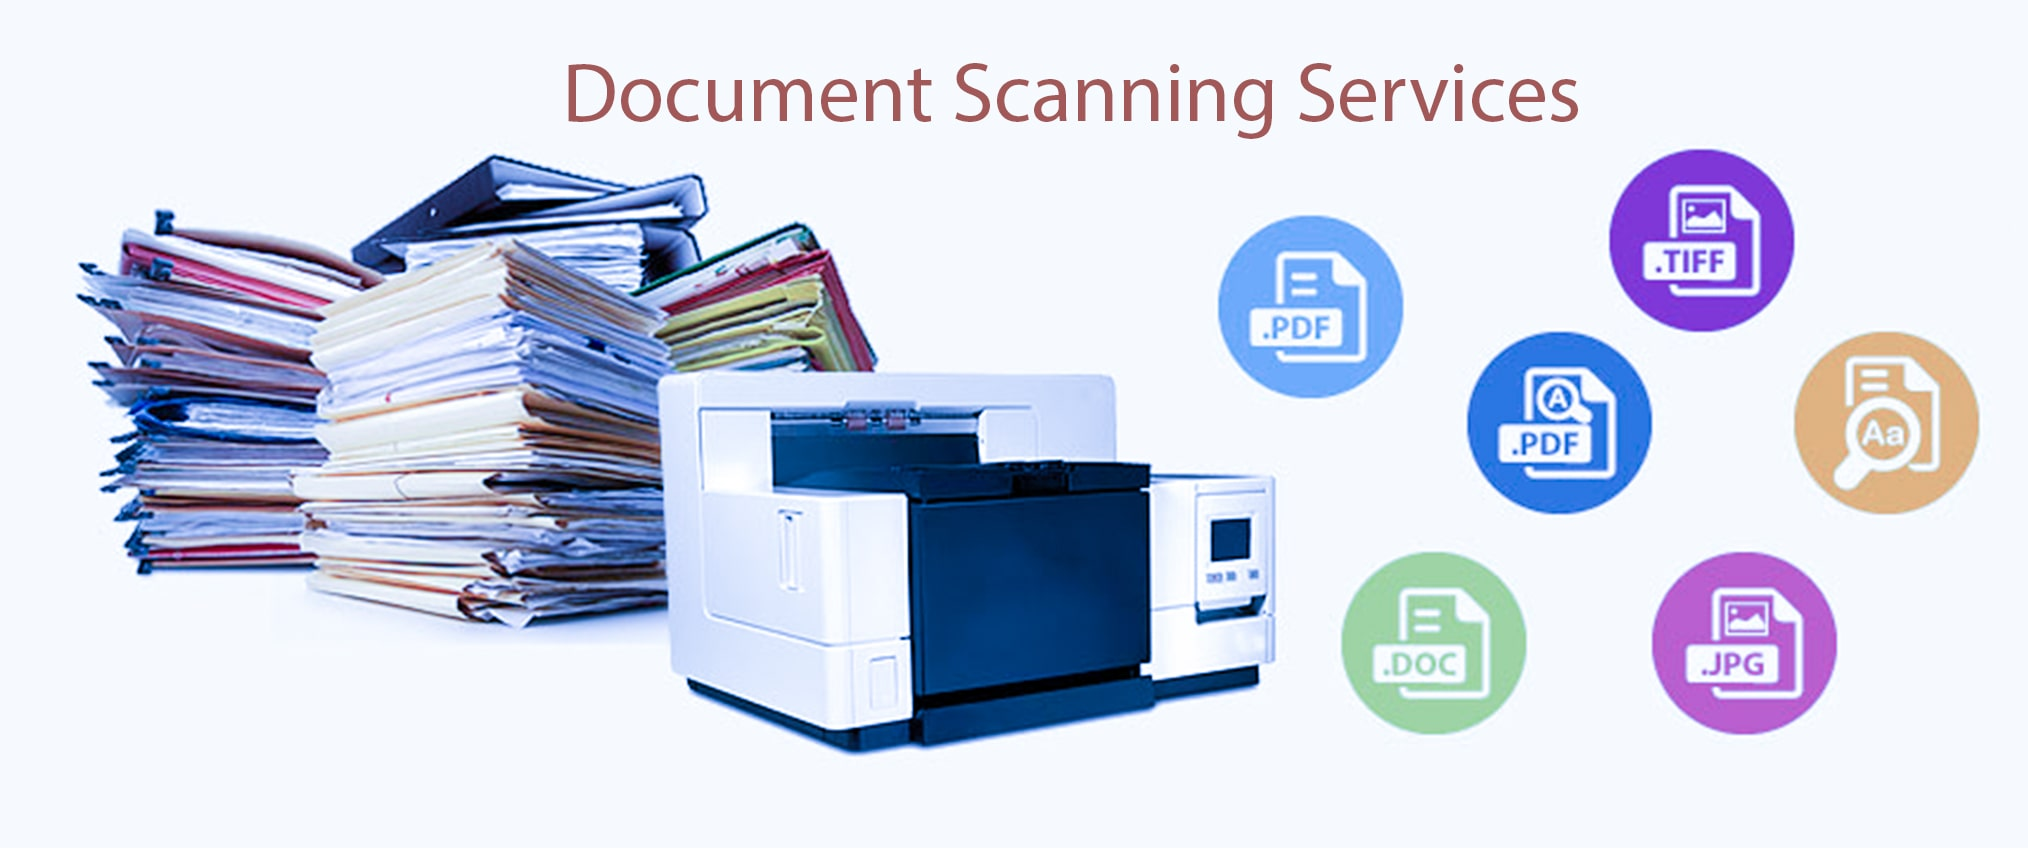 outsource legal document scanning service to offshore partner